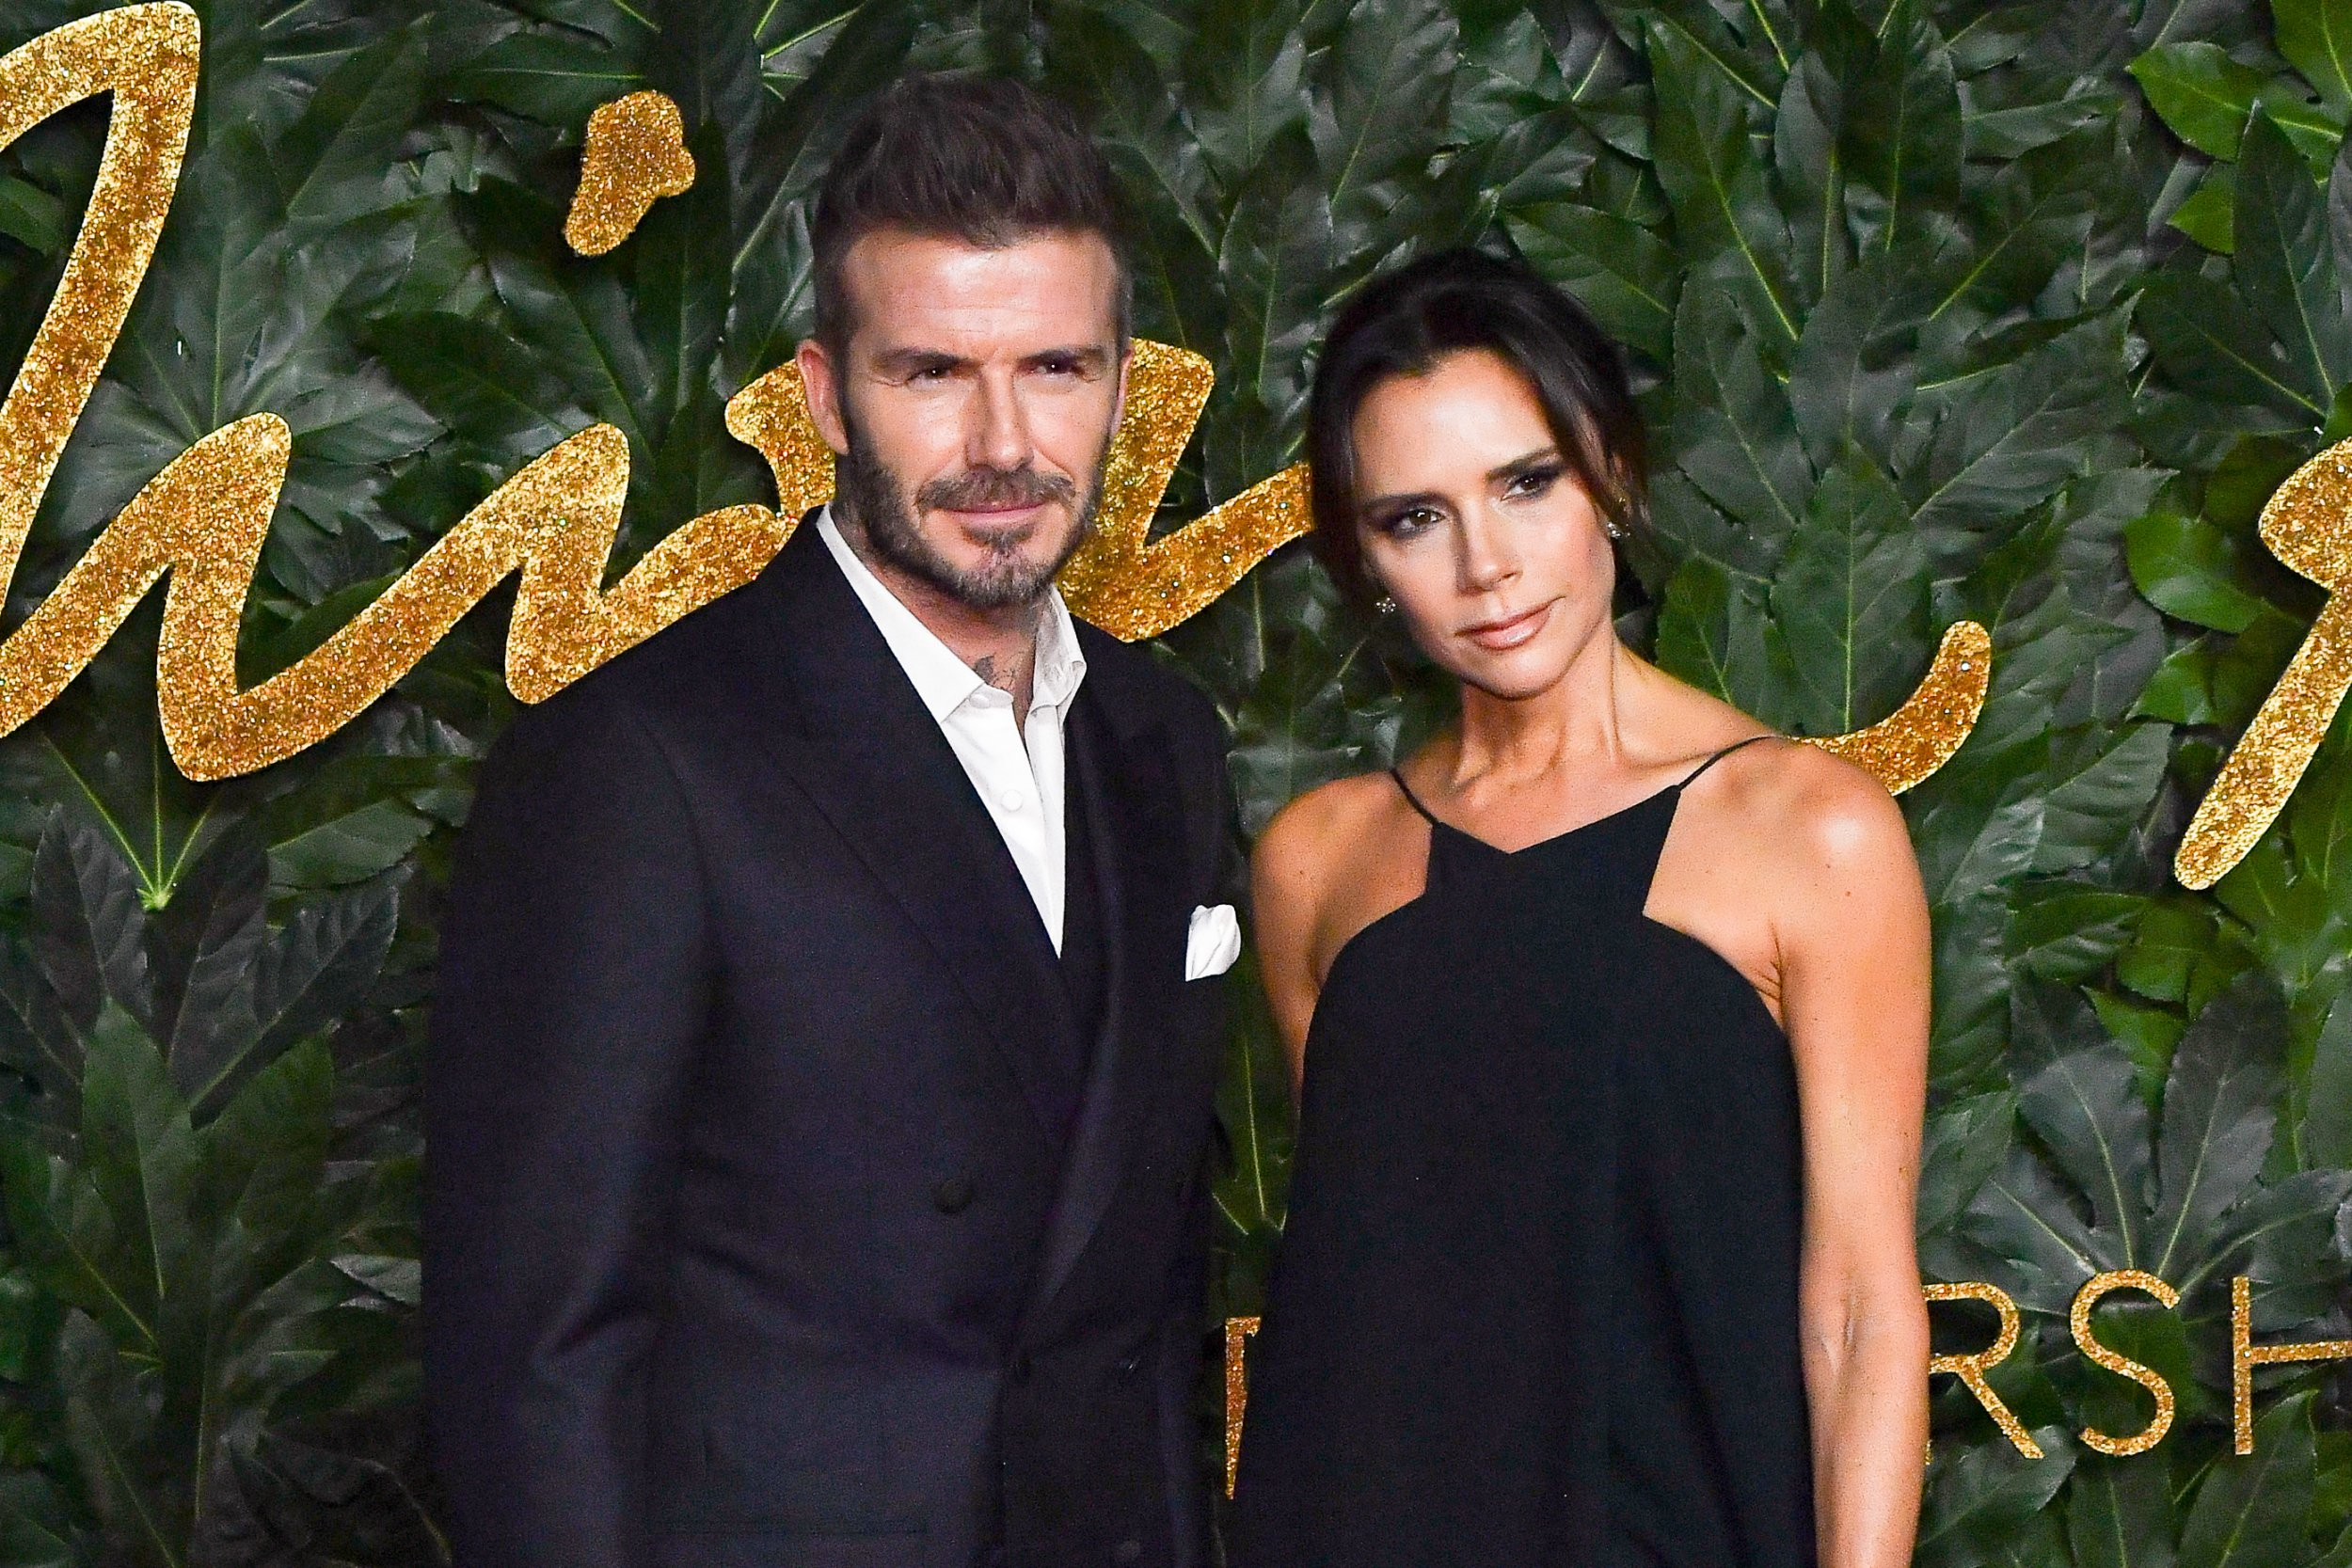 David Beckham 'cuts his own wages by nearly £7 million' after Victoria's fashion brand 'loses £30 million'